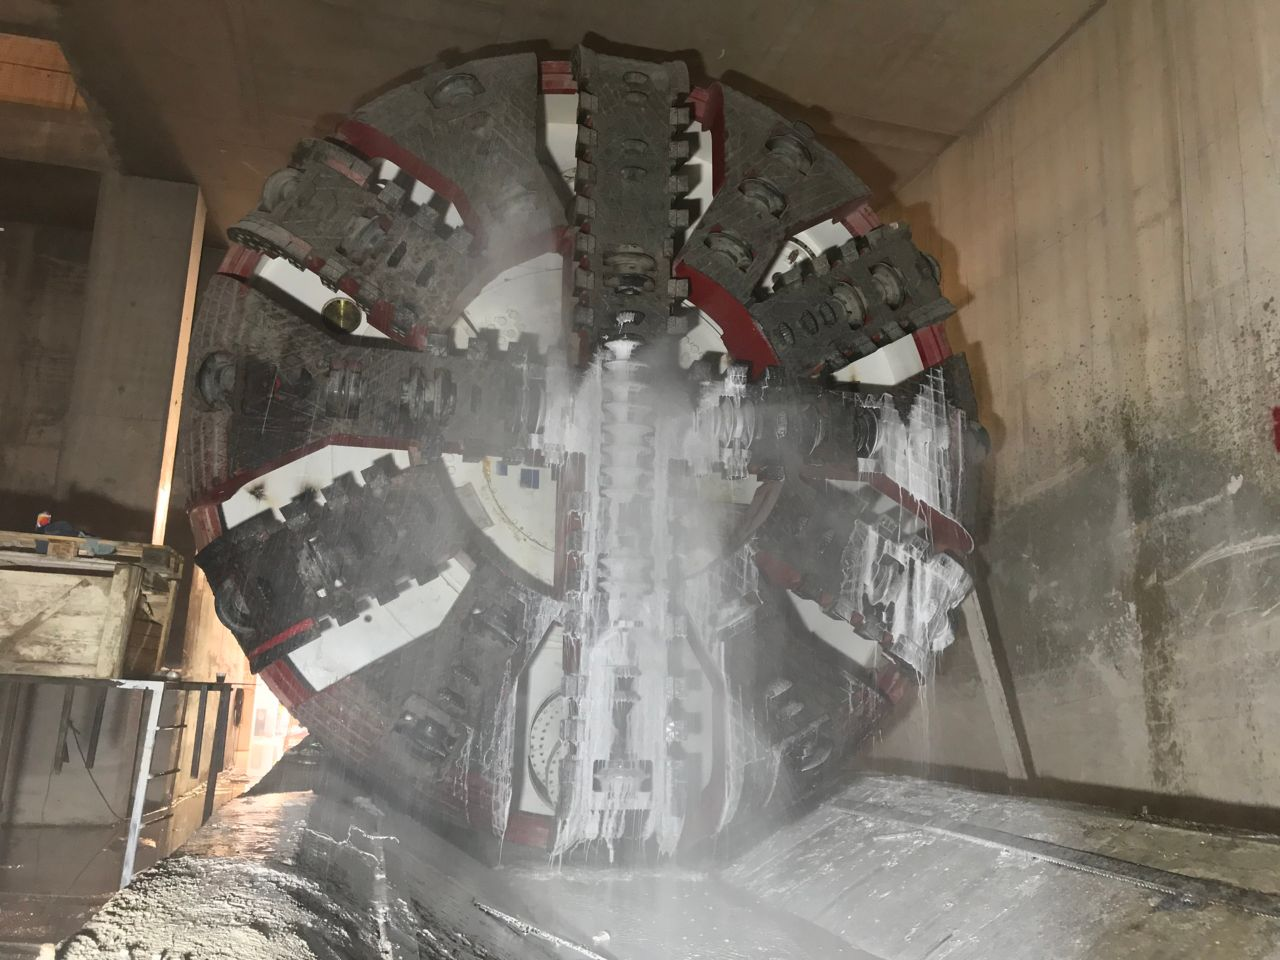 Tunnel boring machine in tunnel construction